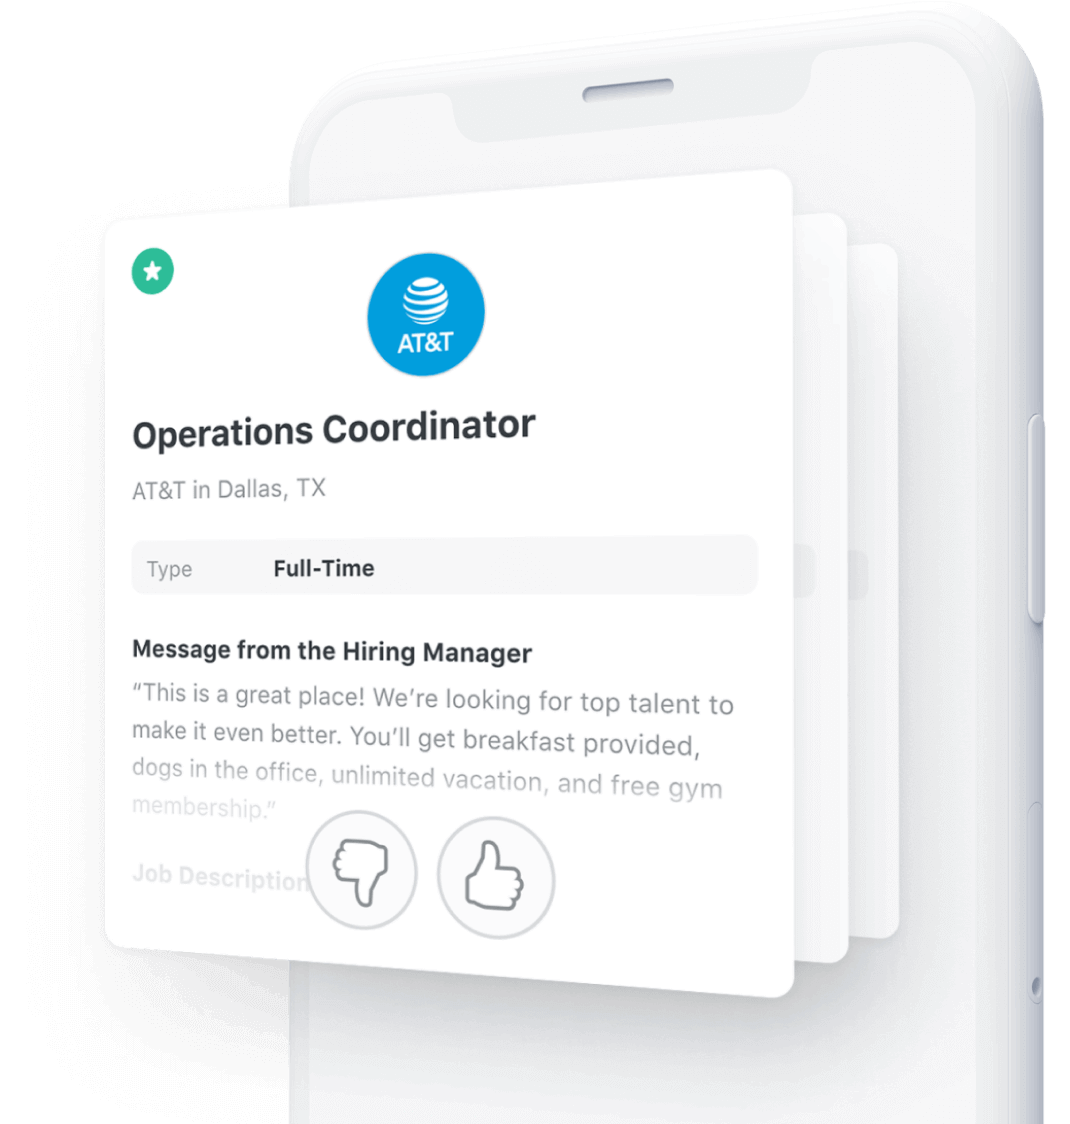 Details of job, Operation Coordinator for AT&T